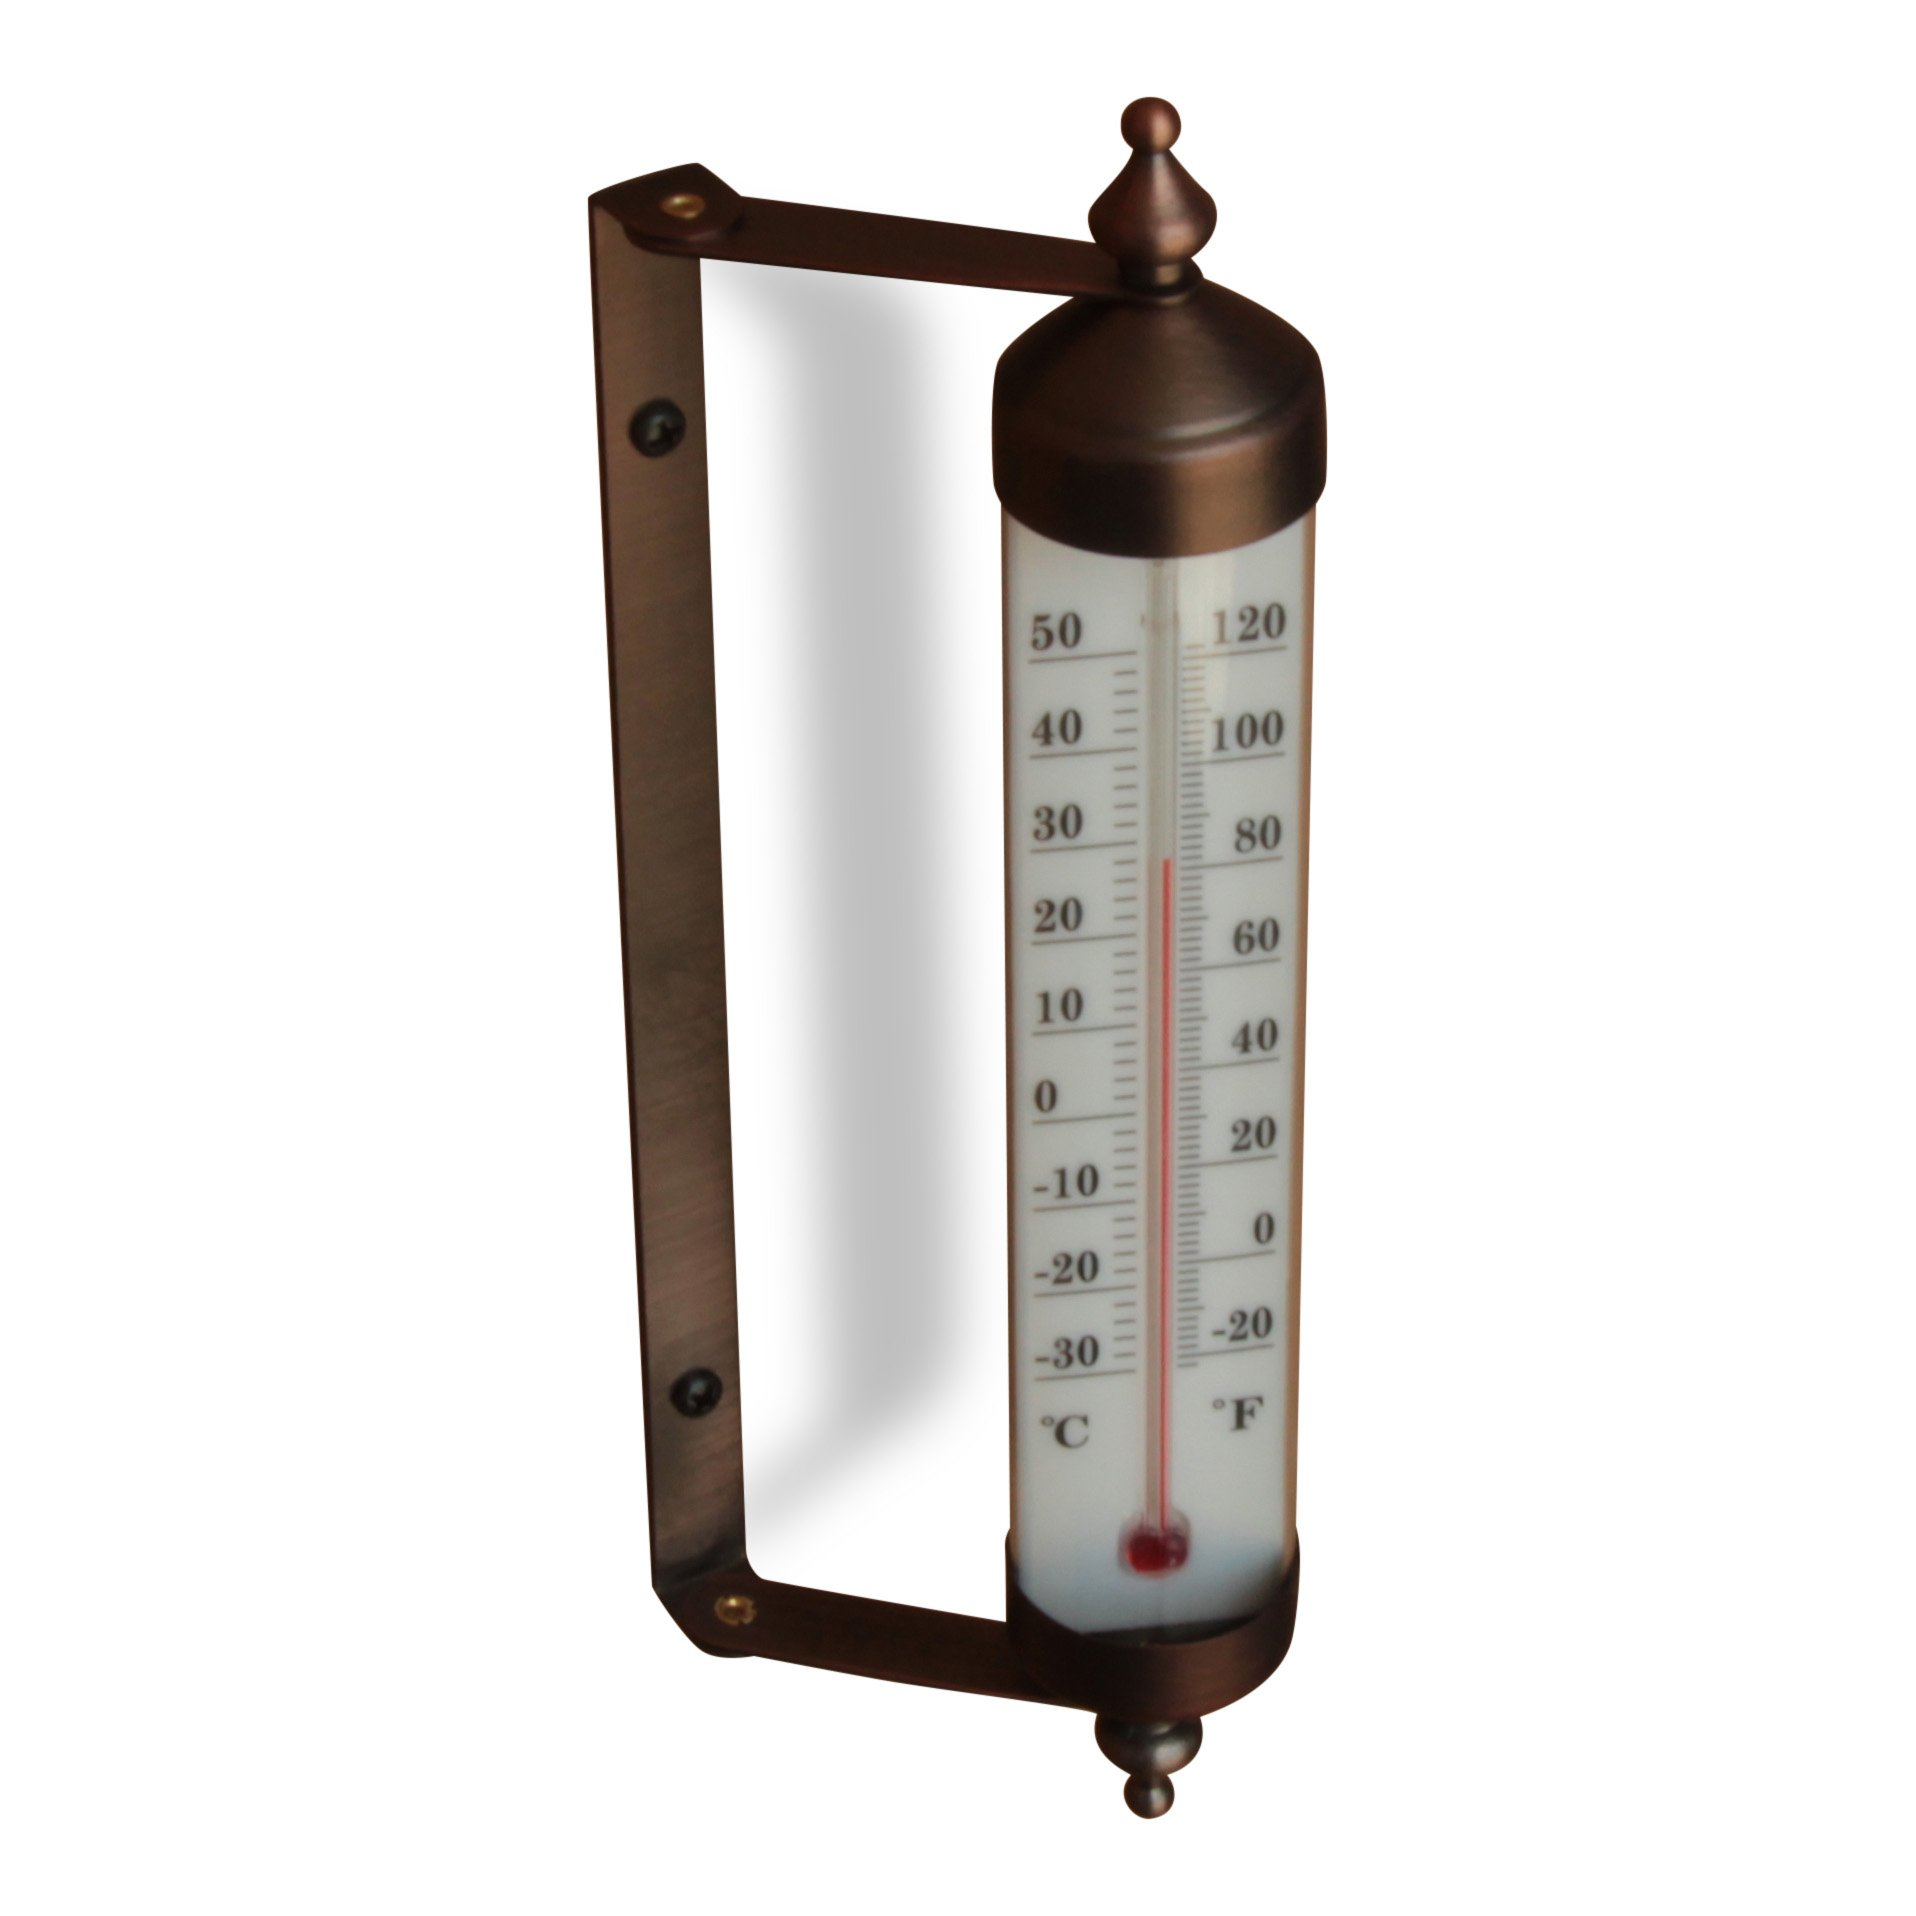 Adjustable Angle 10 Inch Garden Thermometer (Bronze)